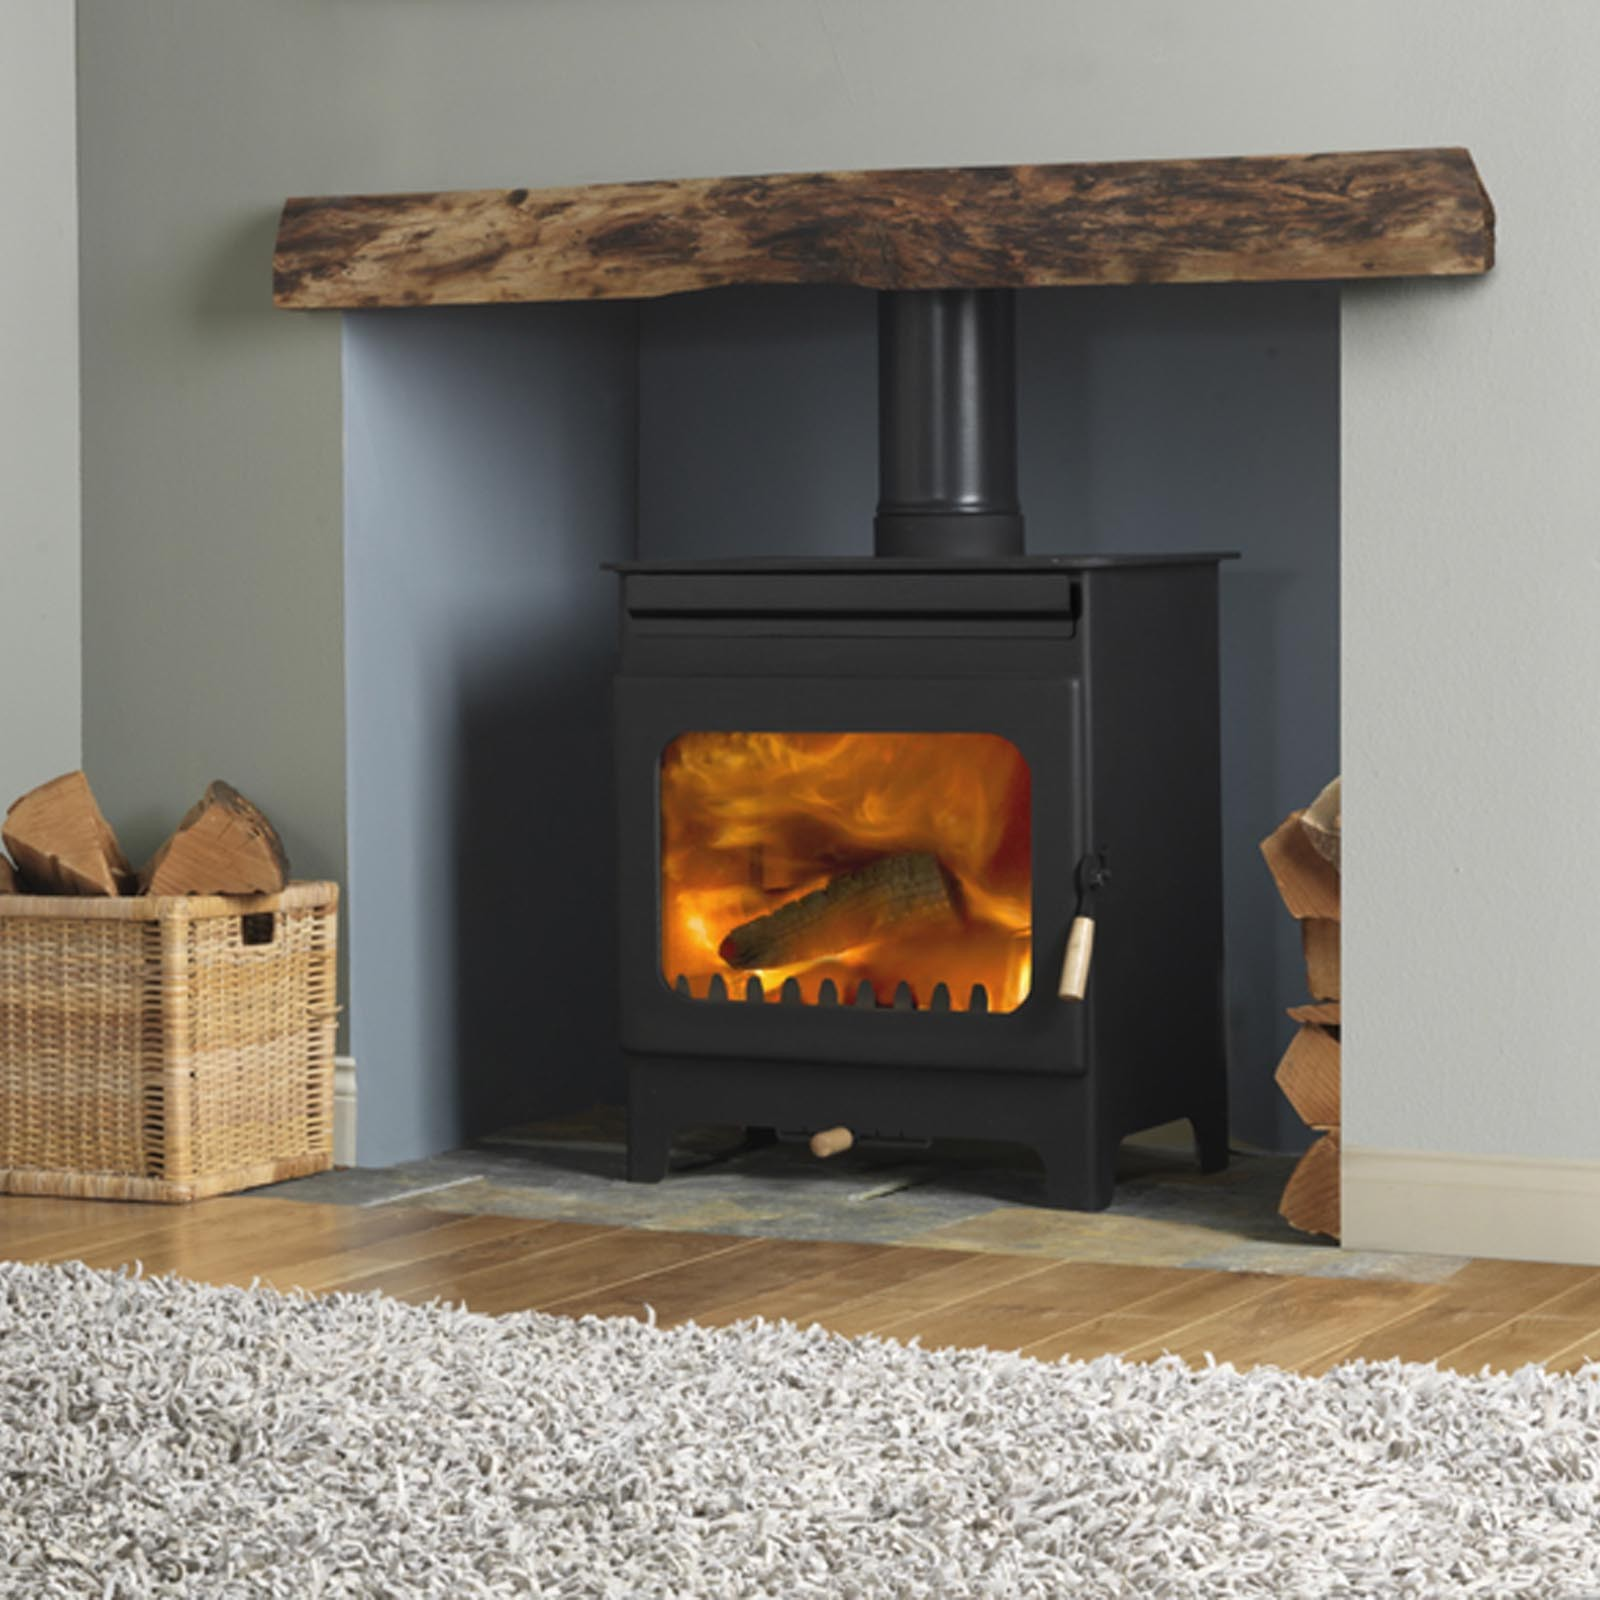 Learn About The Different Types Of Wood Burning Stoves Available